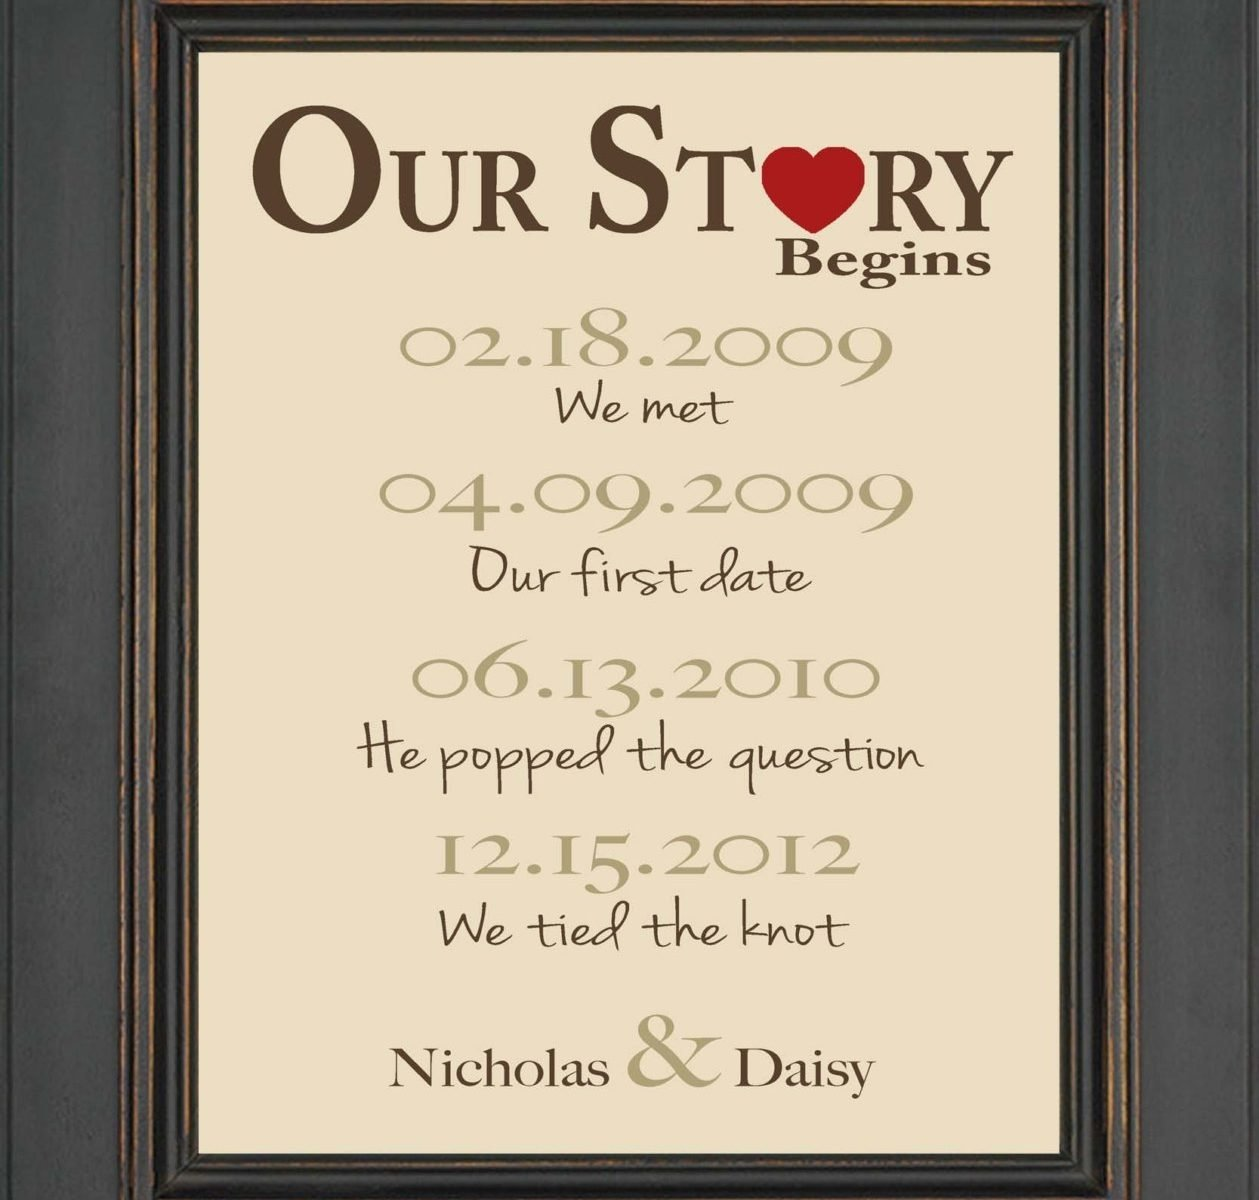 10 Amazing 1St Wedding Anniversary Gift Ideas For Him firstear wedding anniversary gifts for husband ideas 1st gift my 2020